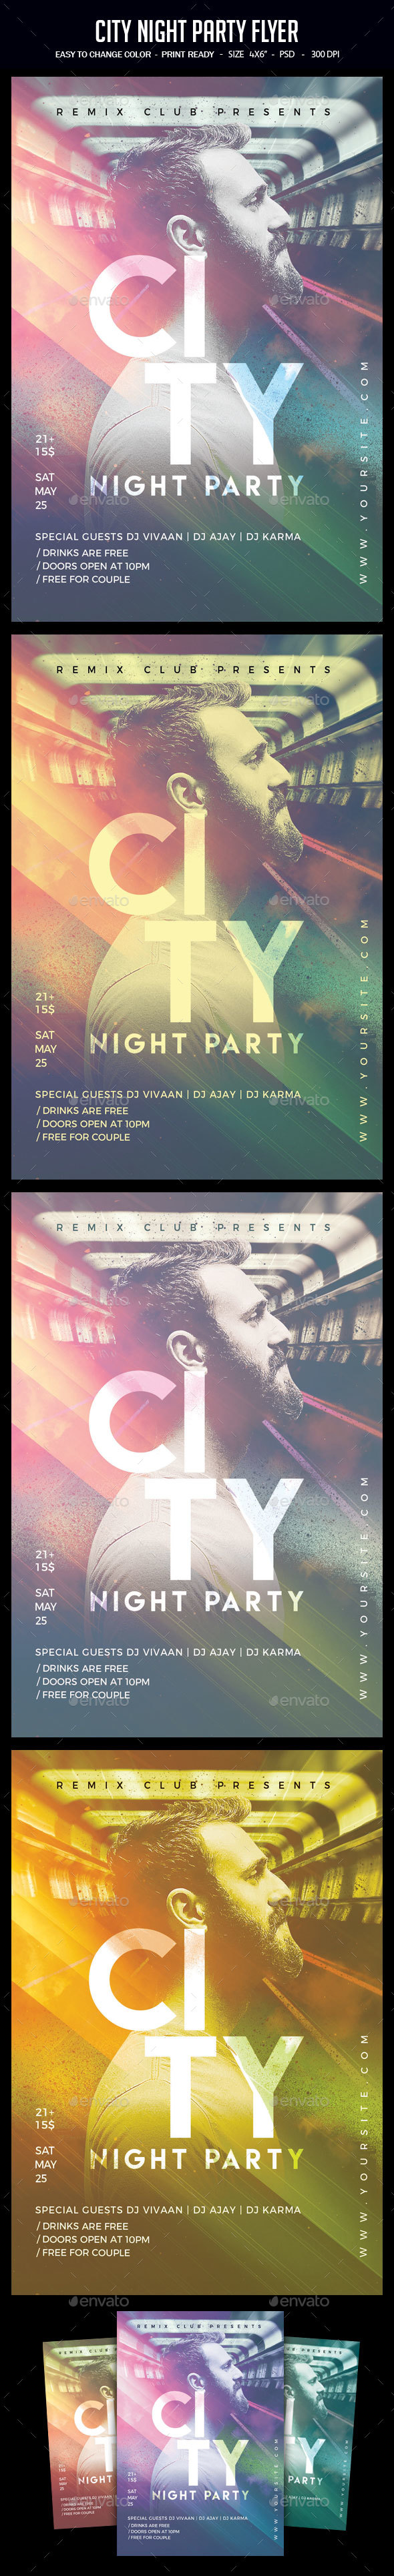 City Night Party Flyer - Clubs & Parties Events